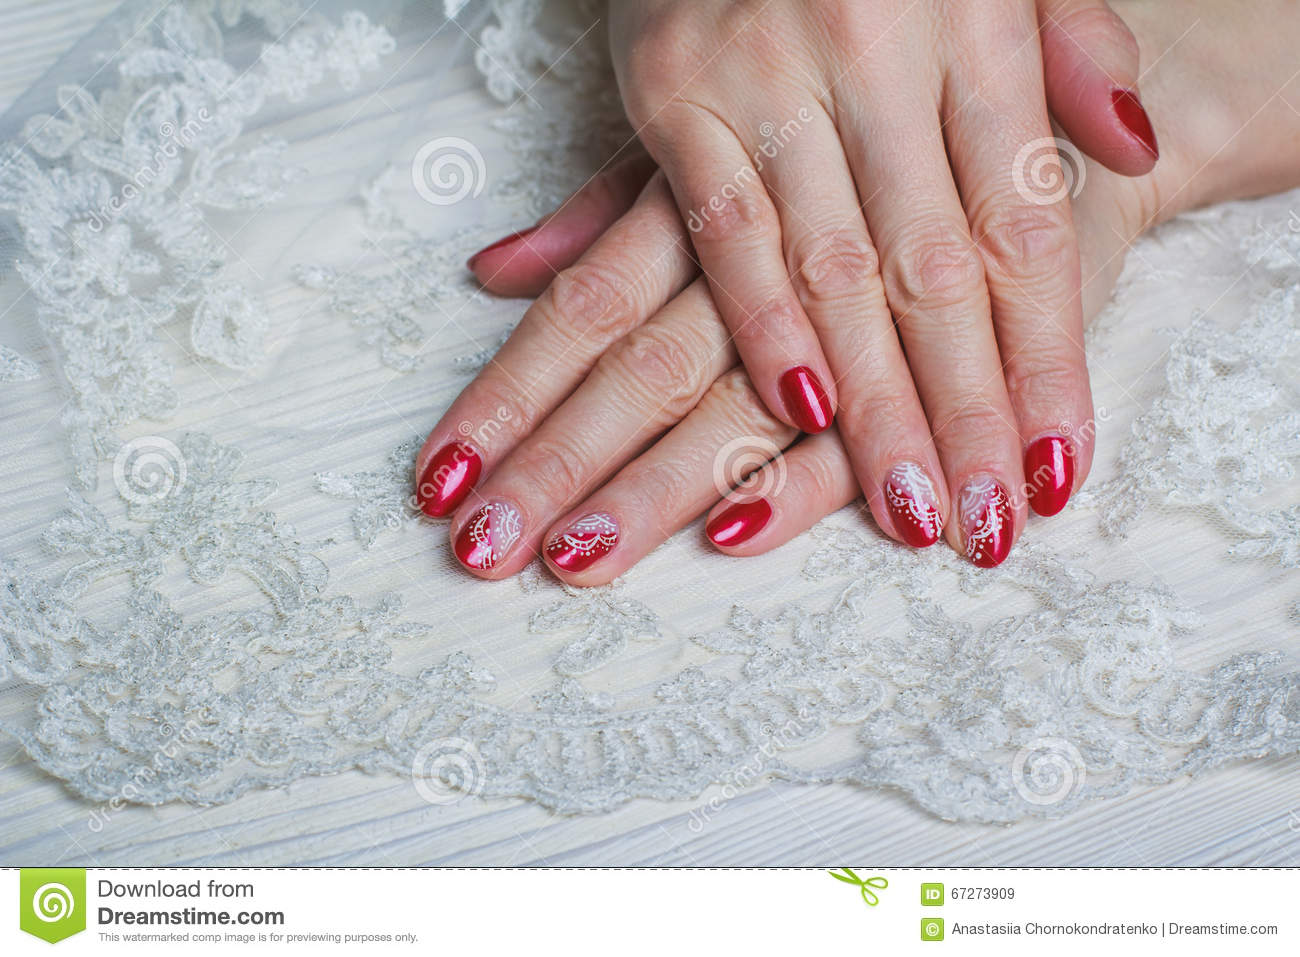 Red Nail Art With White Lace With Dots And Lines Stock Image - Image ...